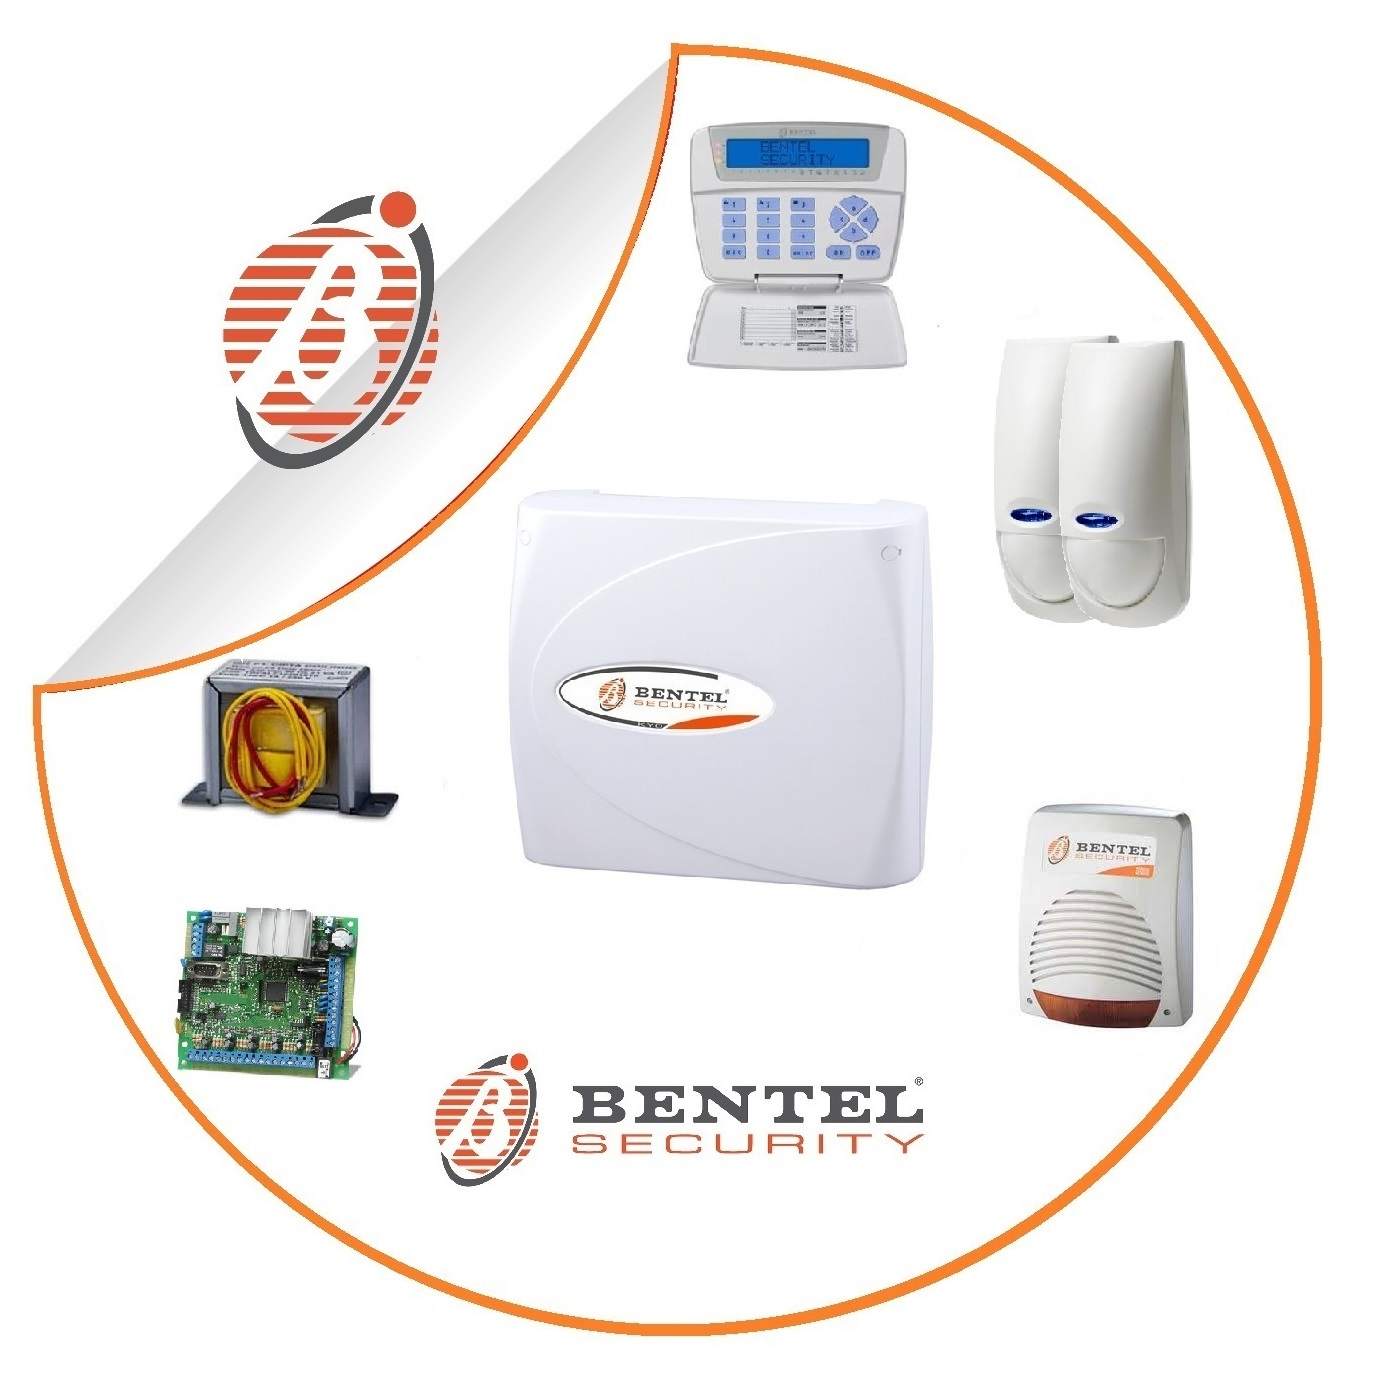 Kit centrale kyo8 bentel security pnp antifurti for Bentel call pi